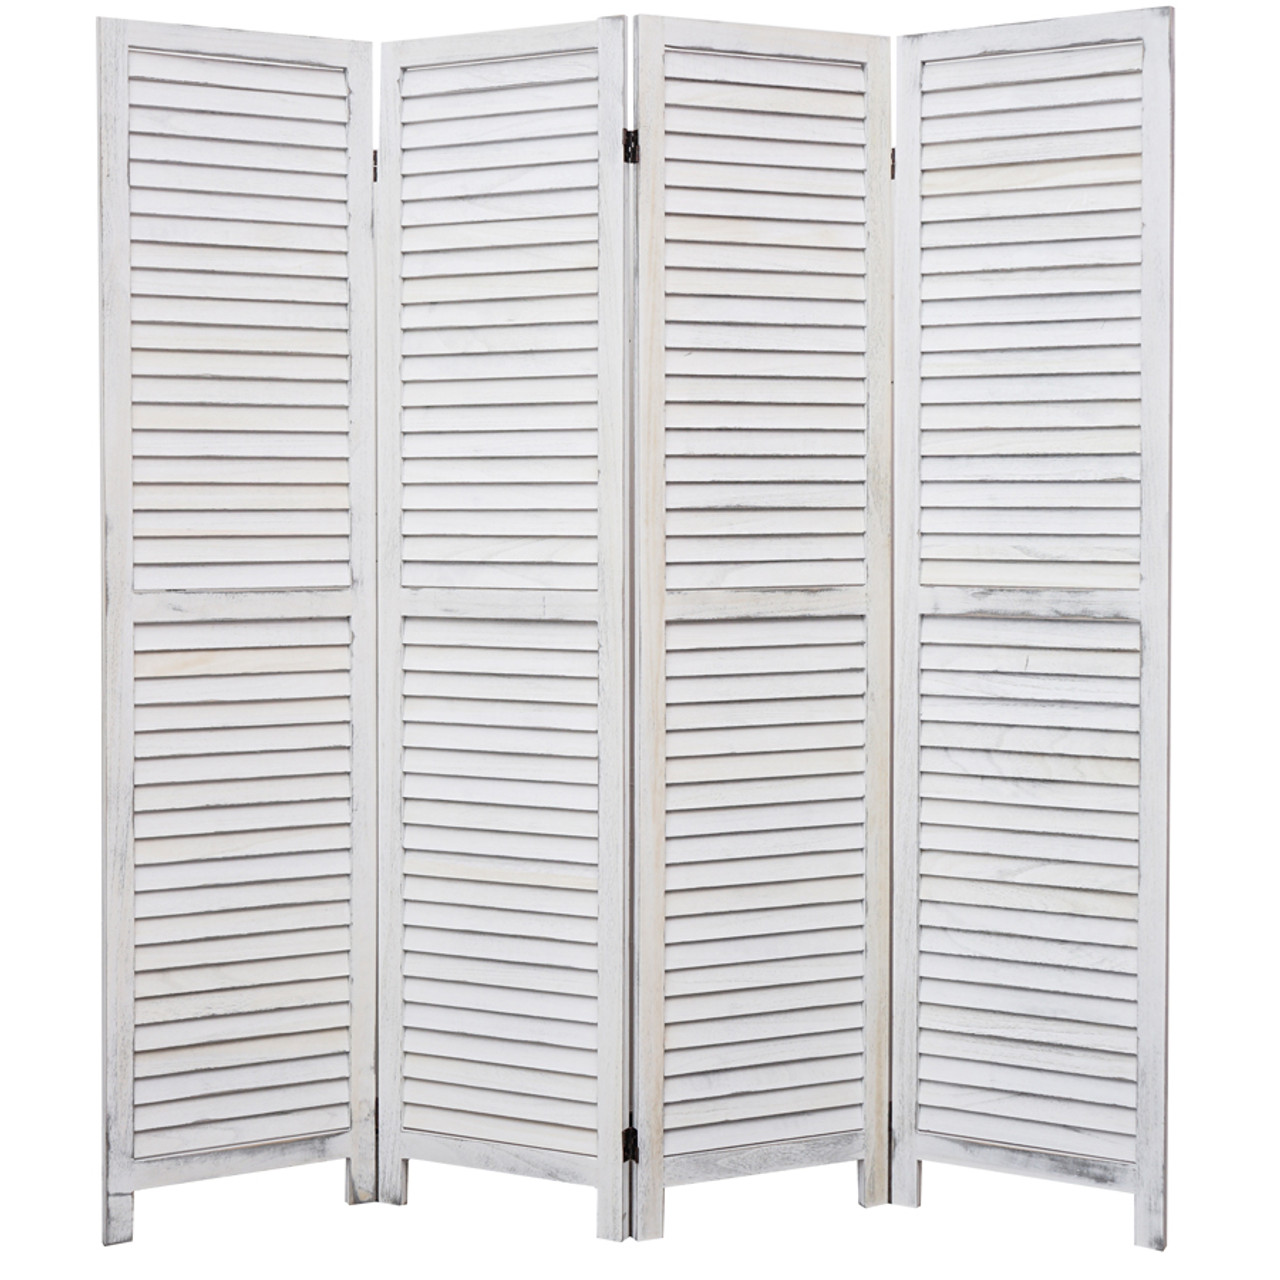 4, 6, 8 Panel Room Divider Full Length Wood Shutters White in USA, California, New York, New York City, Los Angeles, San Francisco, Pennsylvania, Washington DC, Virginia, Maryland